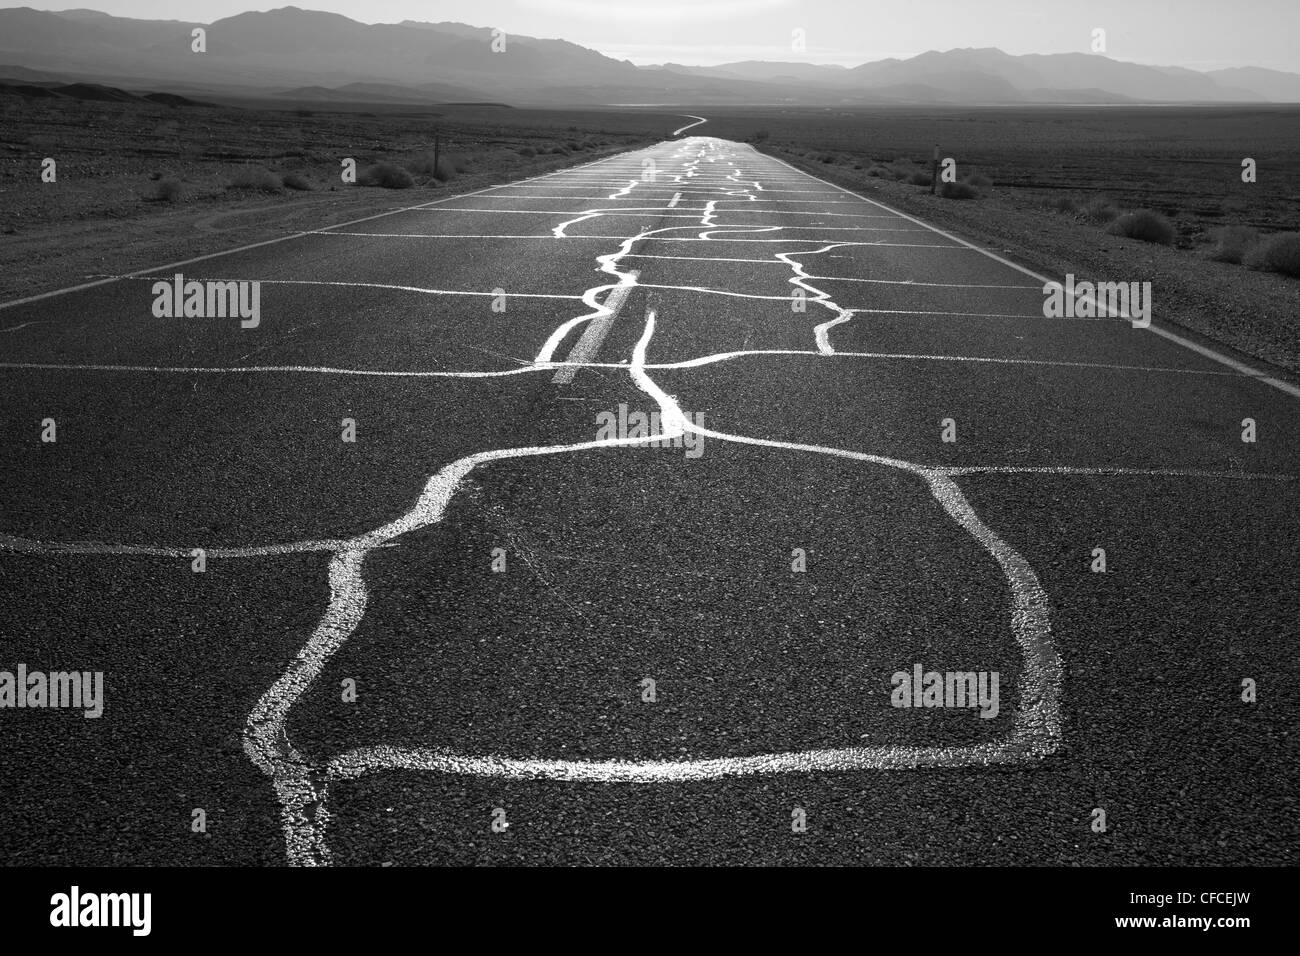 Endless road near Furnace Creek in Death Valley, California - Stock Image